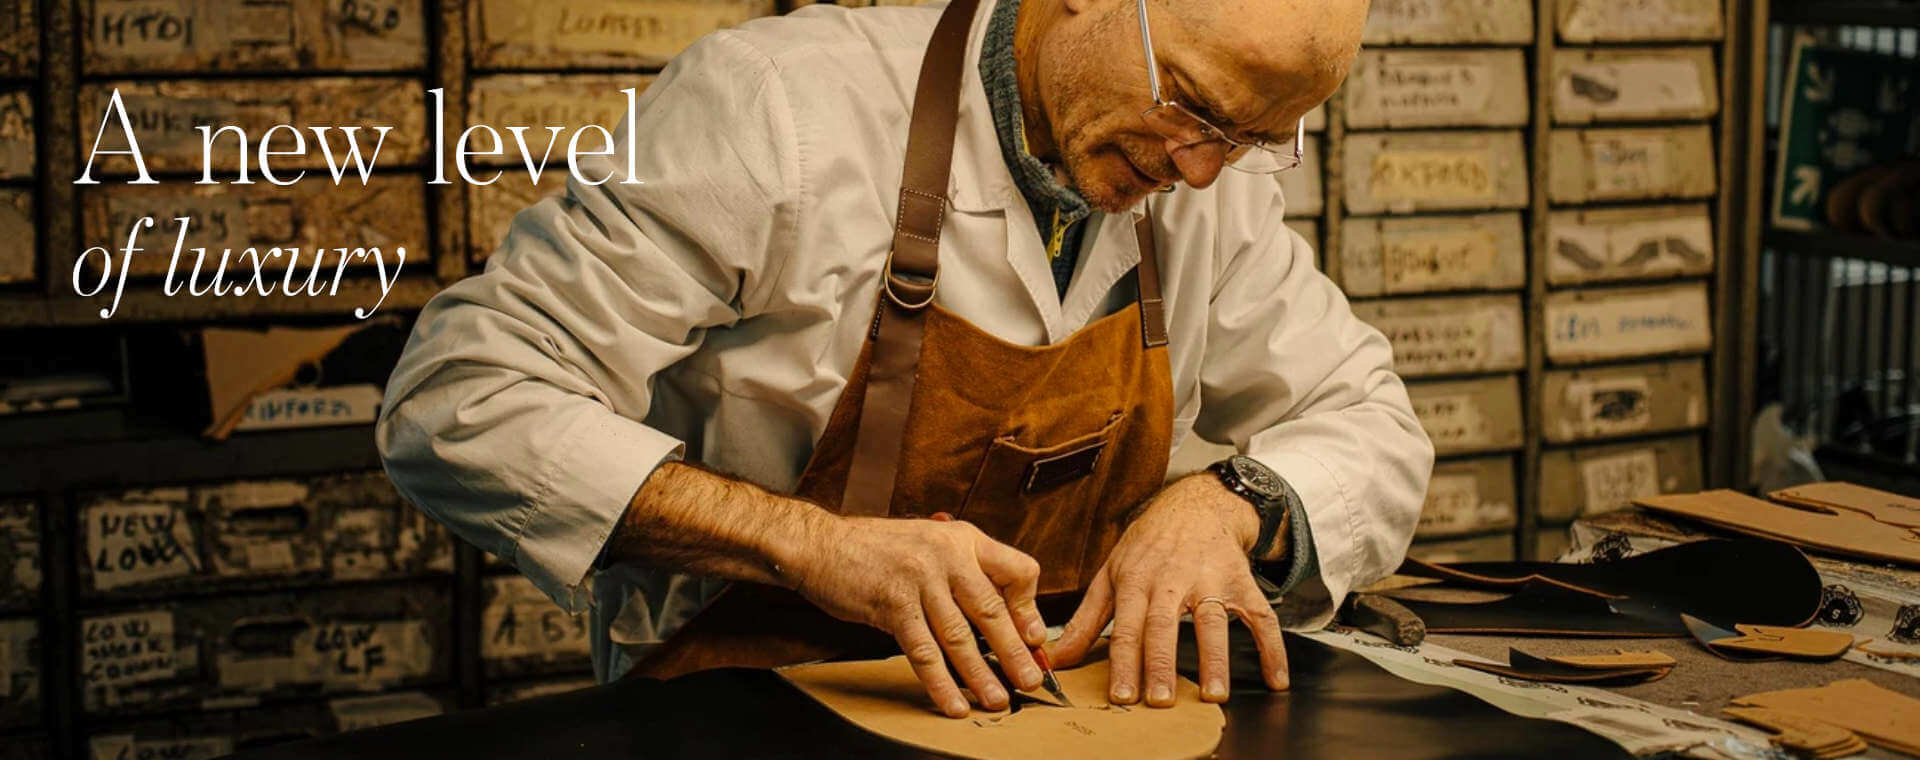 Handcrafted Italian shoes